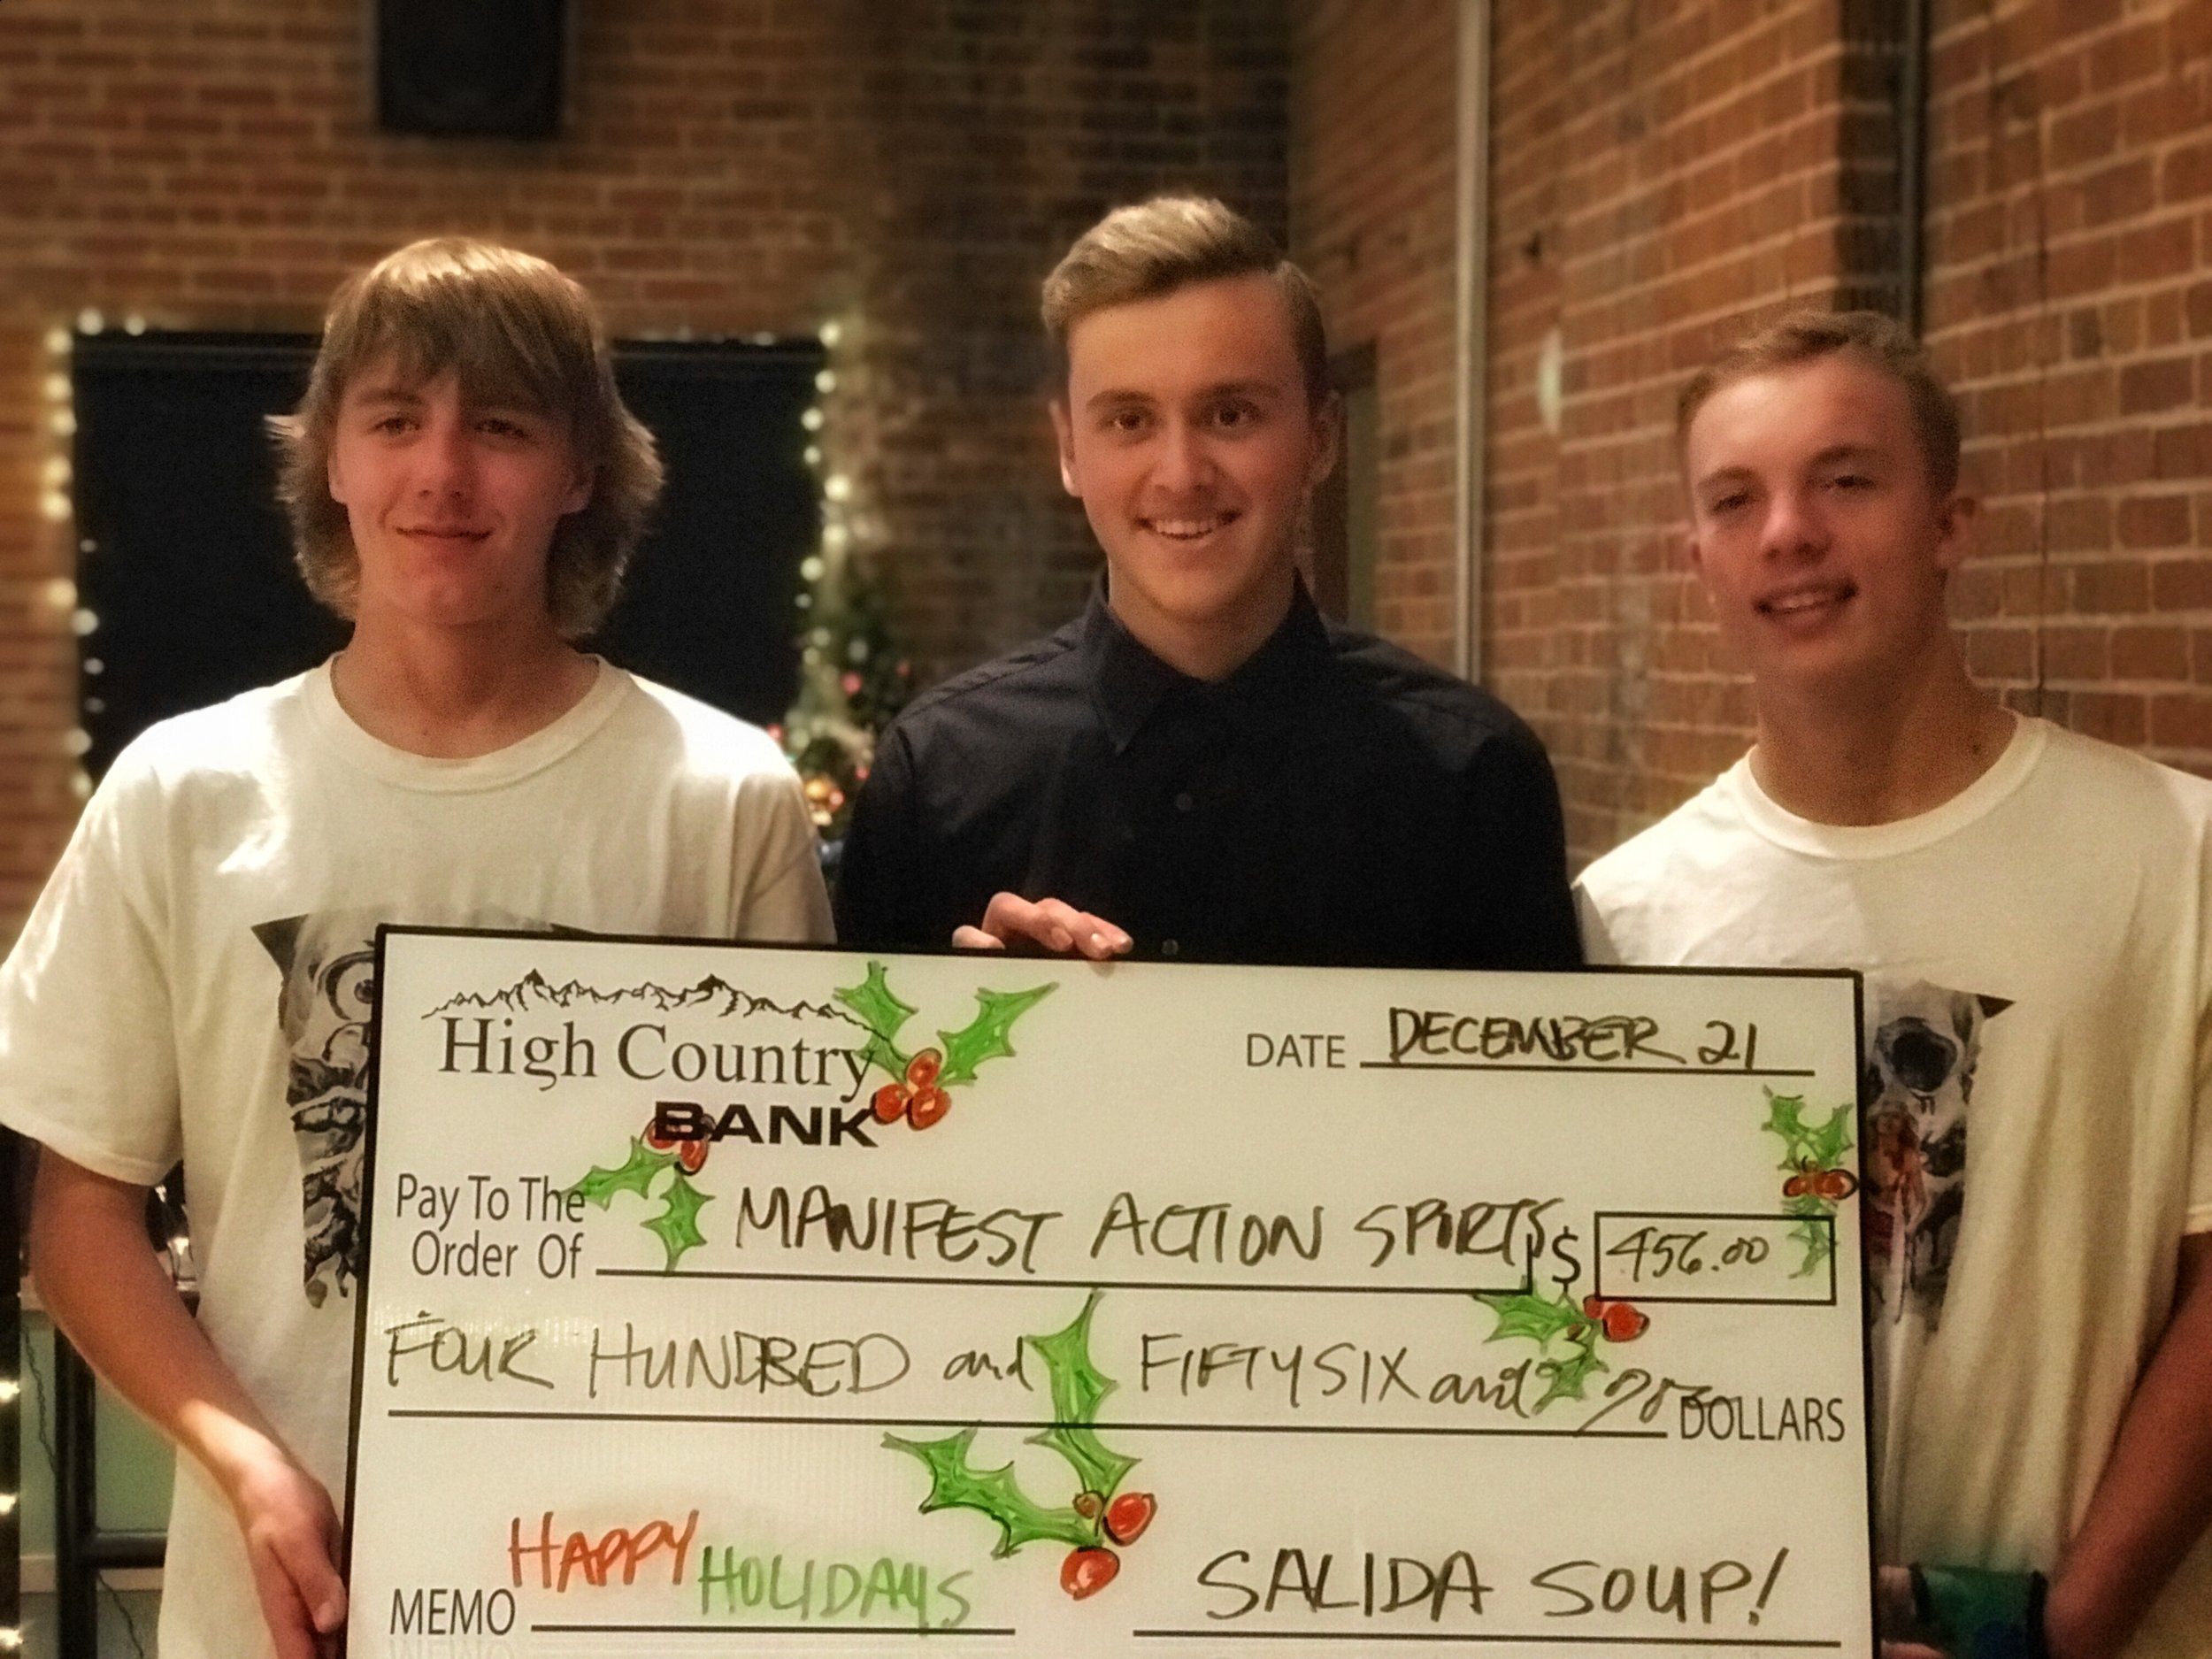 Slaid Waggoner (middle) and the Manifest Action Sports crew posed with the Big Soup Check as the winners of Salida Soup 31 on Thursday, December 21.